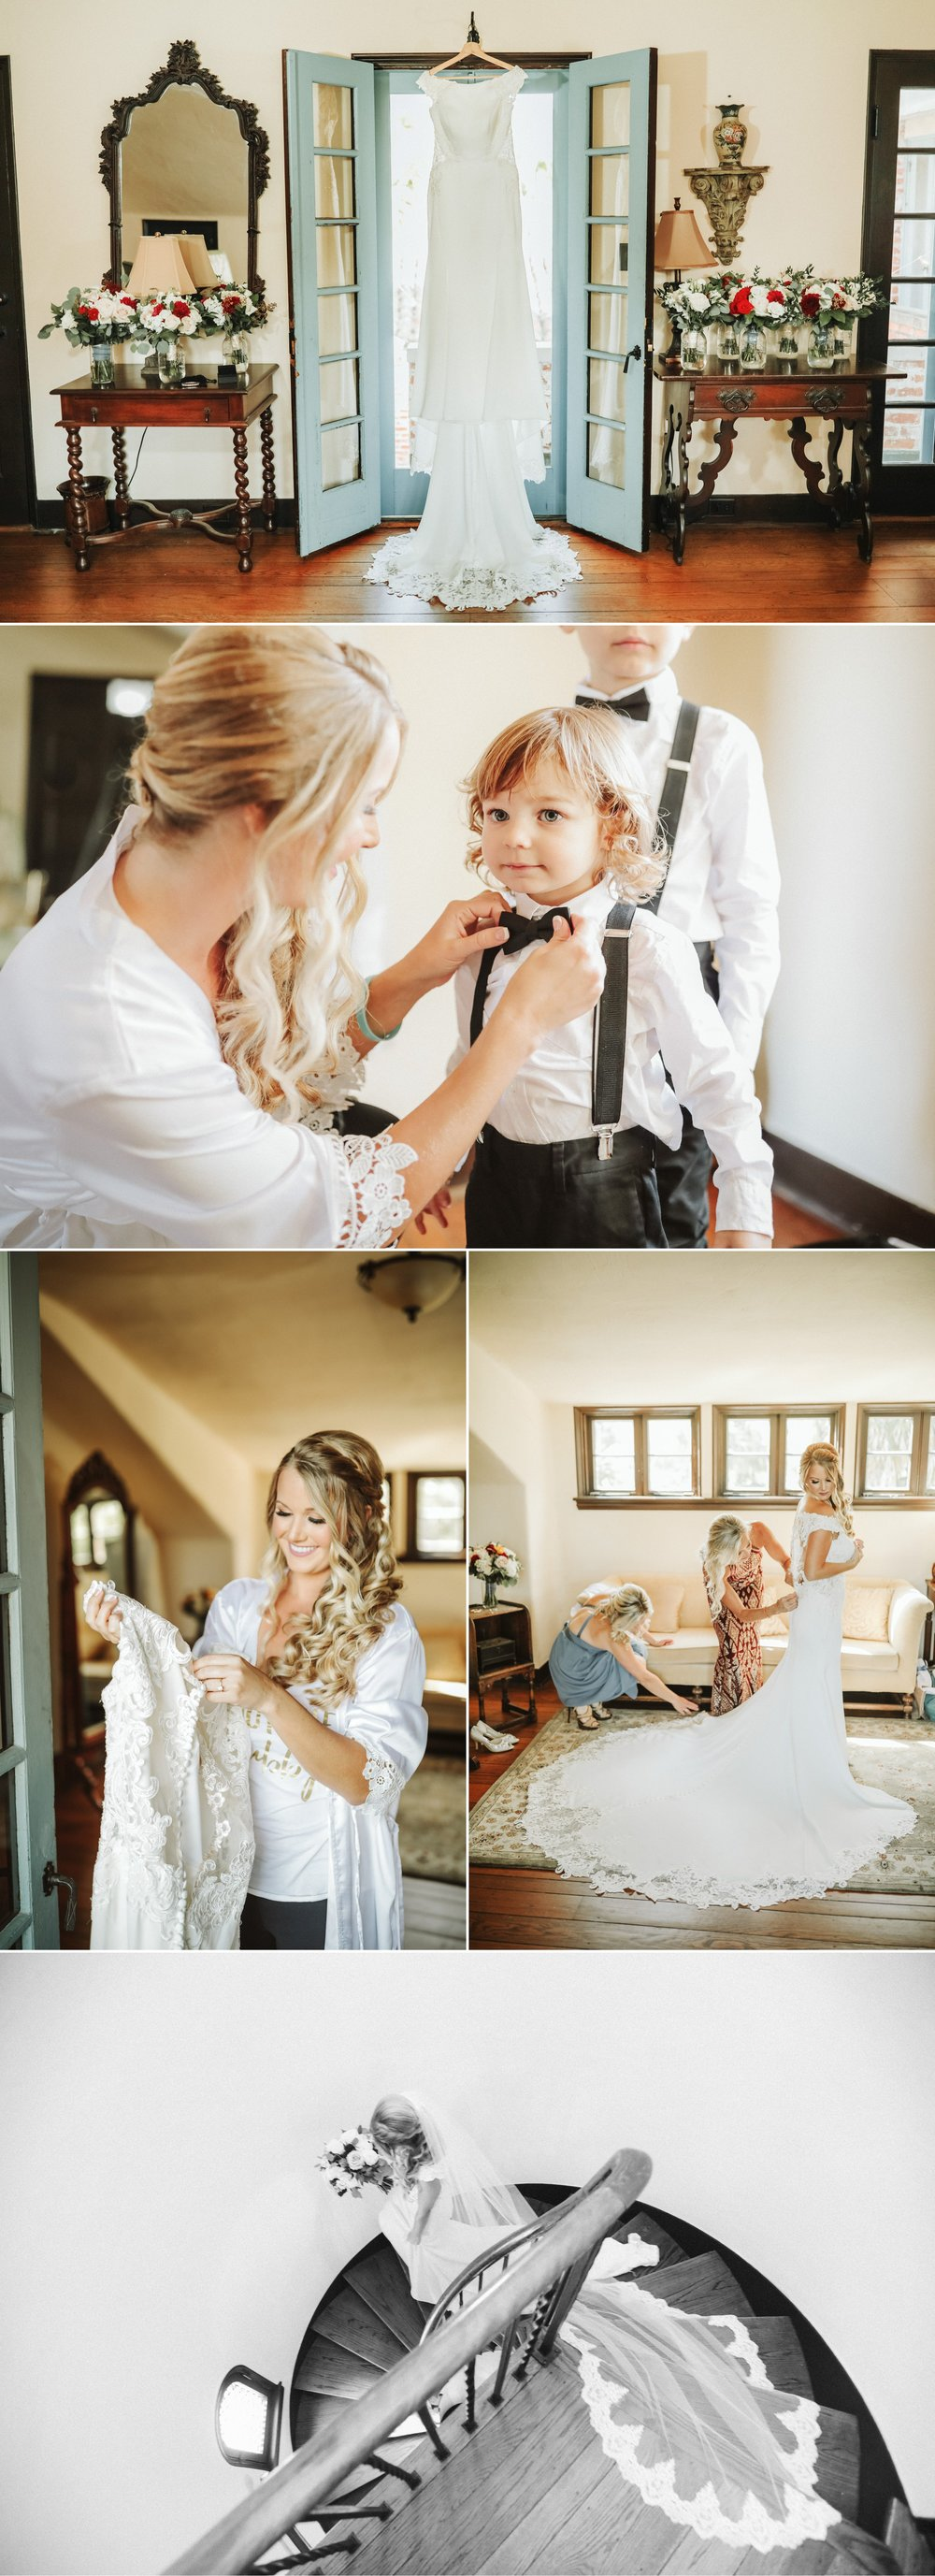 Casa Feliz Romantic Black Tie Wedding- Nick + Marissa- by Shaina DeCiryan Photography1.jpg